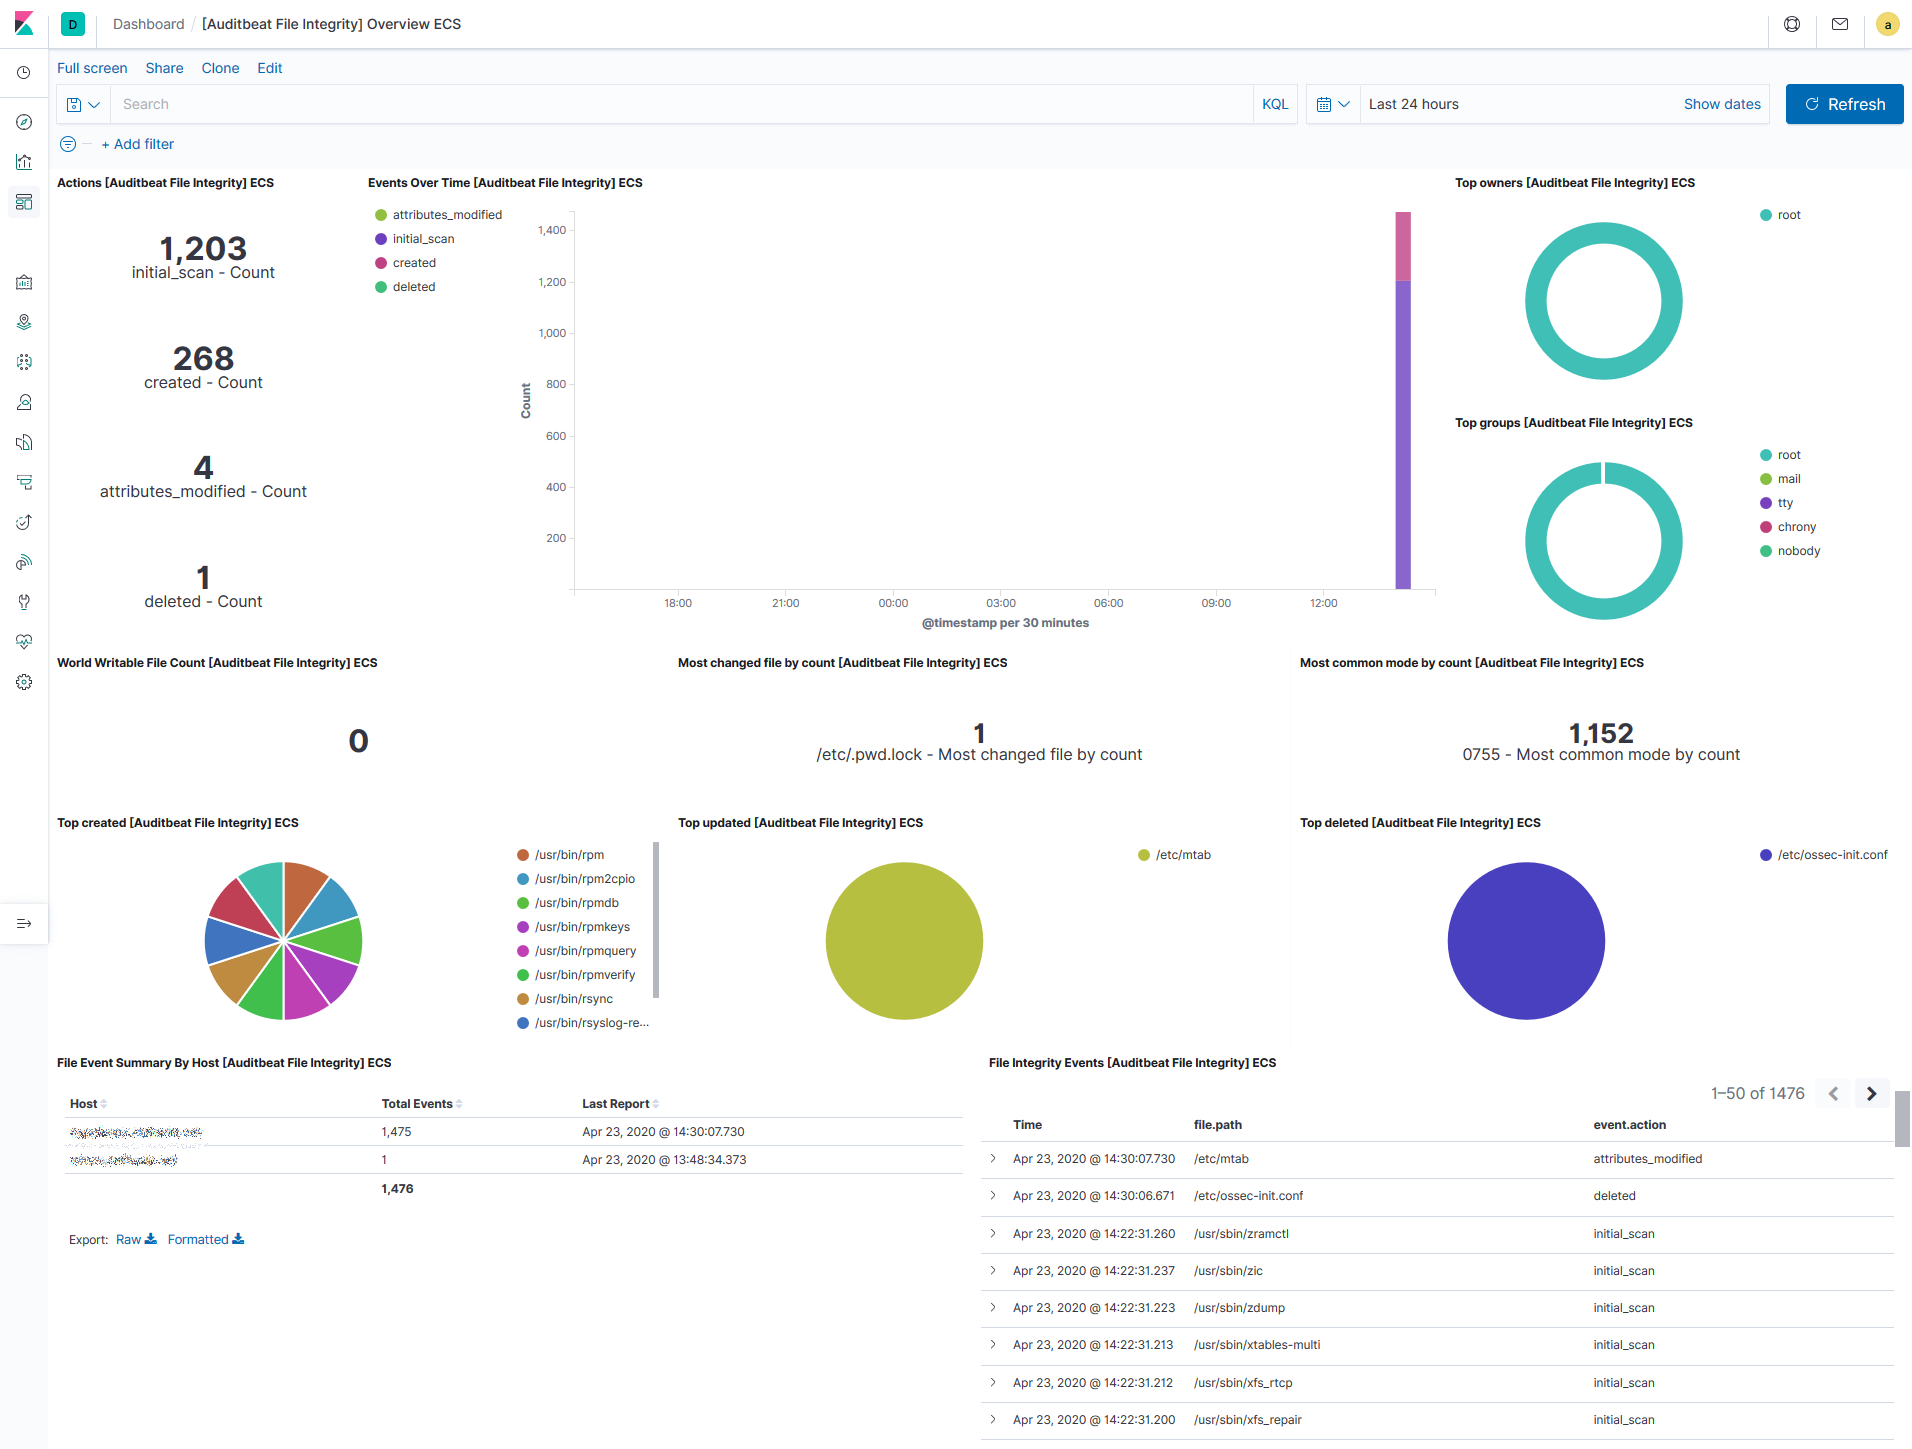 kibana auditbeat dashboards fi